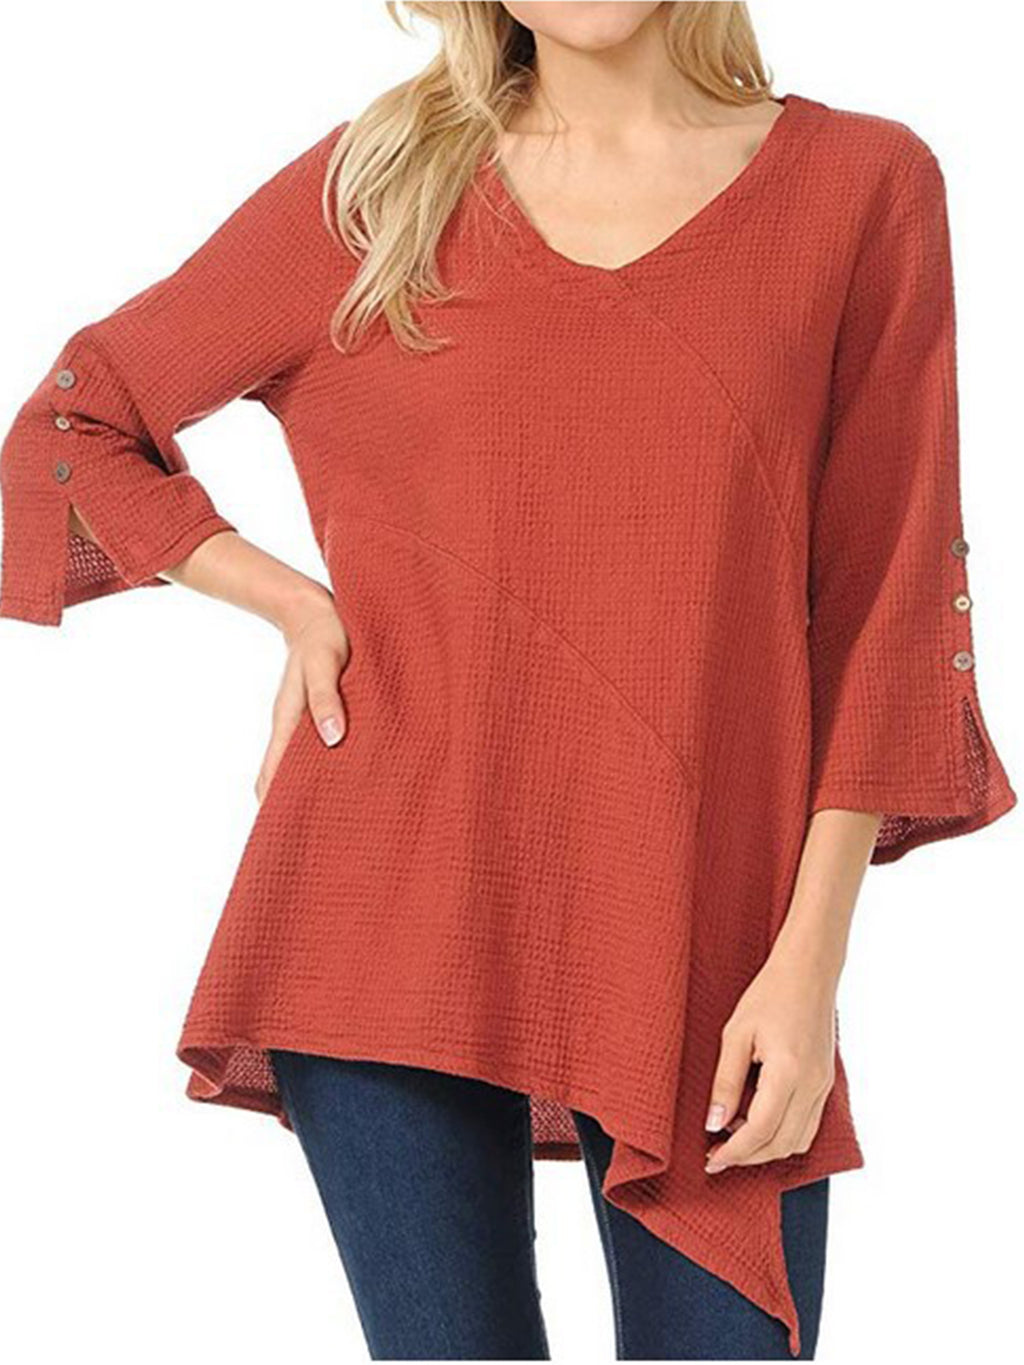 Plus Size Crew Neck 3/4 Sleeve Asymmetrical Plain Blouse